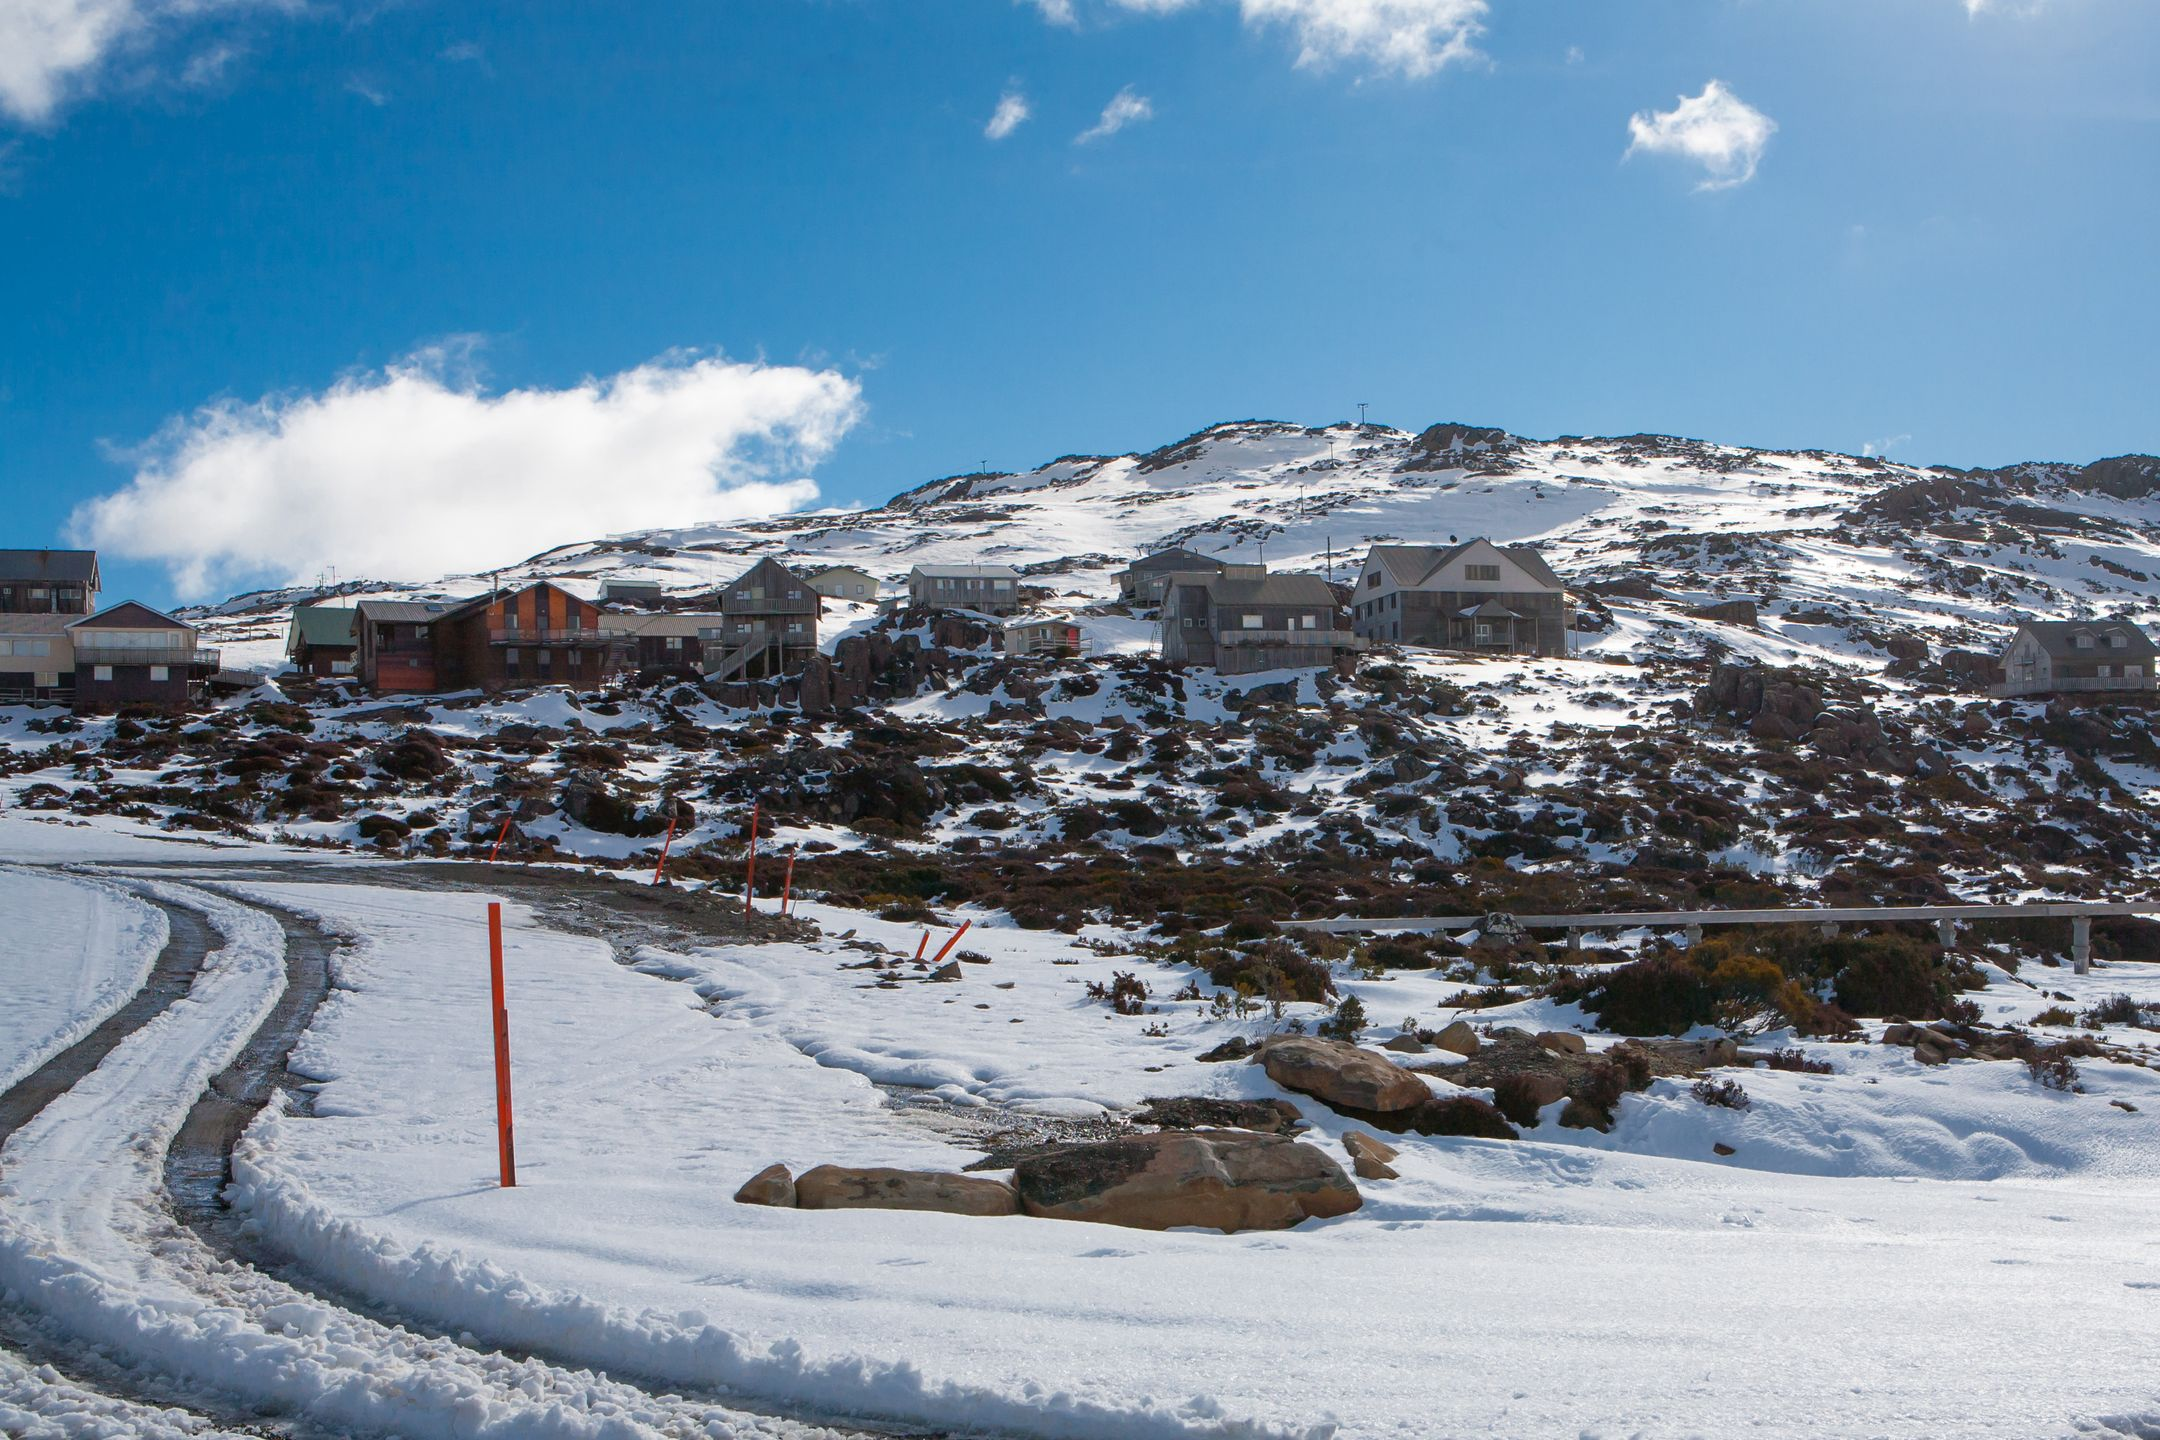 Skiing Australia ski resort Ben Lomond ripatrip travel big